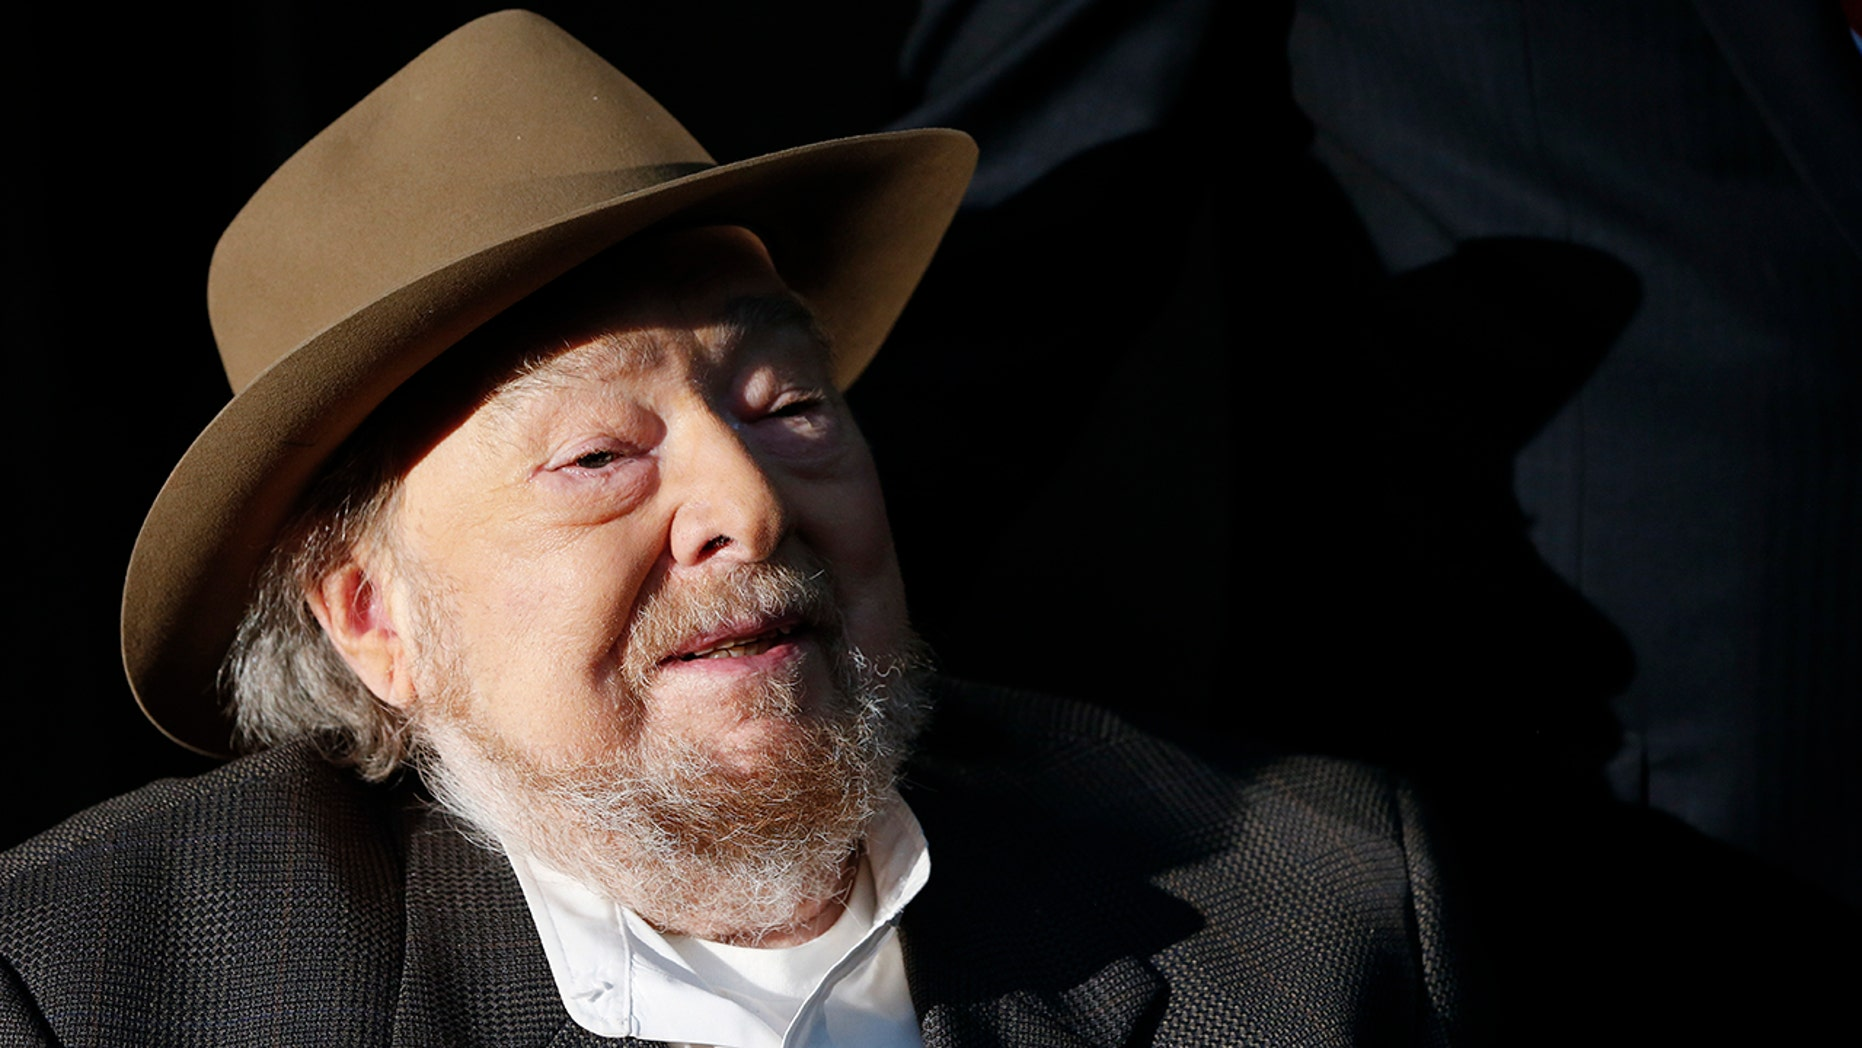 In this April 22, 2014 file photo, Mac Wiseman speaks after he was introduced as one of three new inductees into the Country Music Hall of Fame in Nashville, Tenn. Spring Hill Funeral Home in Nashville, Tenn., says the bluegrass and country vocalist has died at the age of 93. The funeral home said Wiseman died Sunday, Feb. 24, 2019.